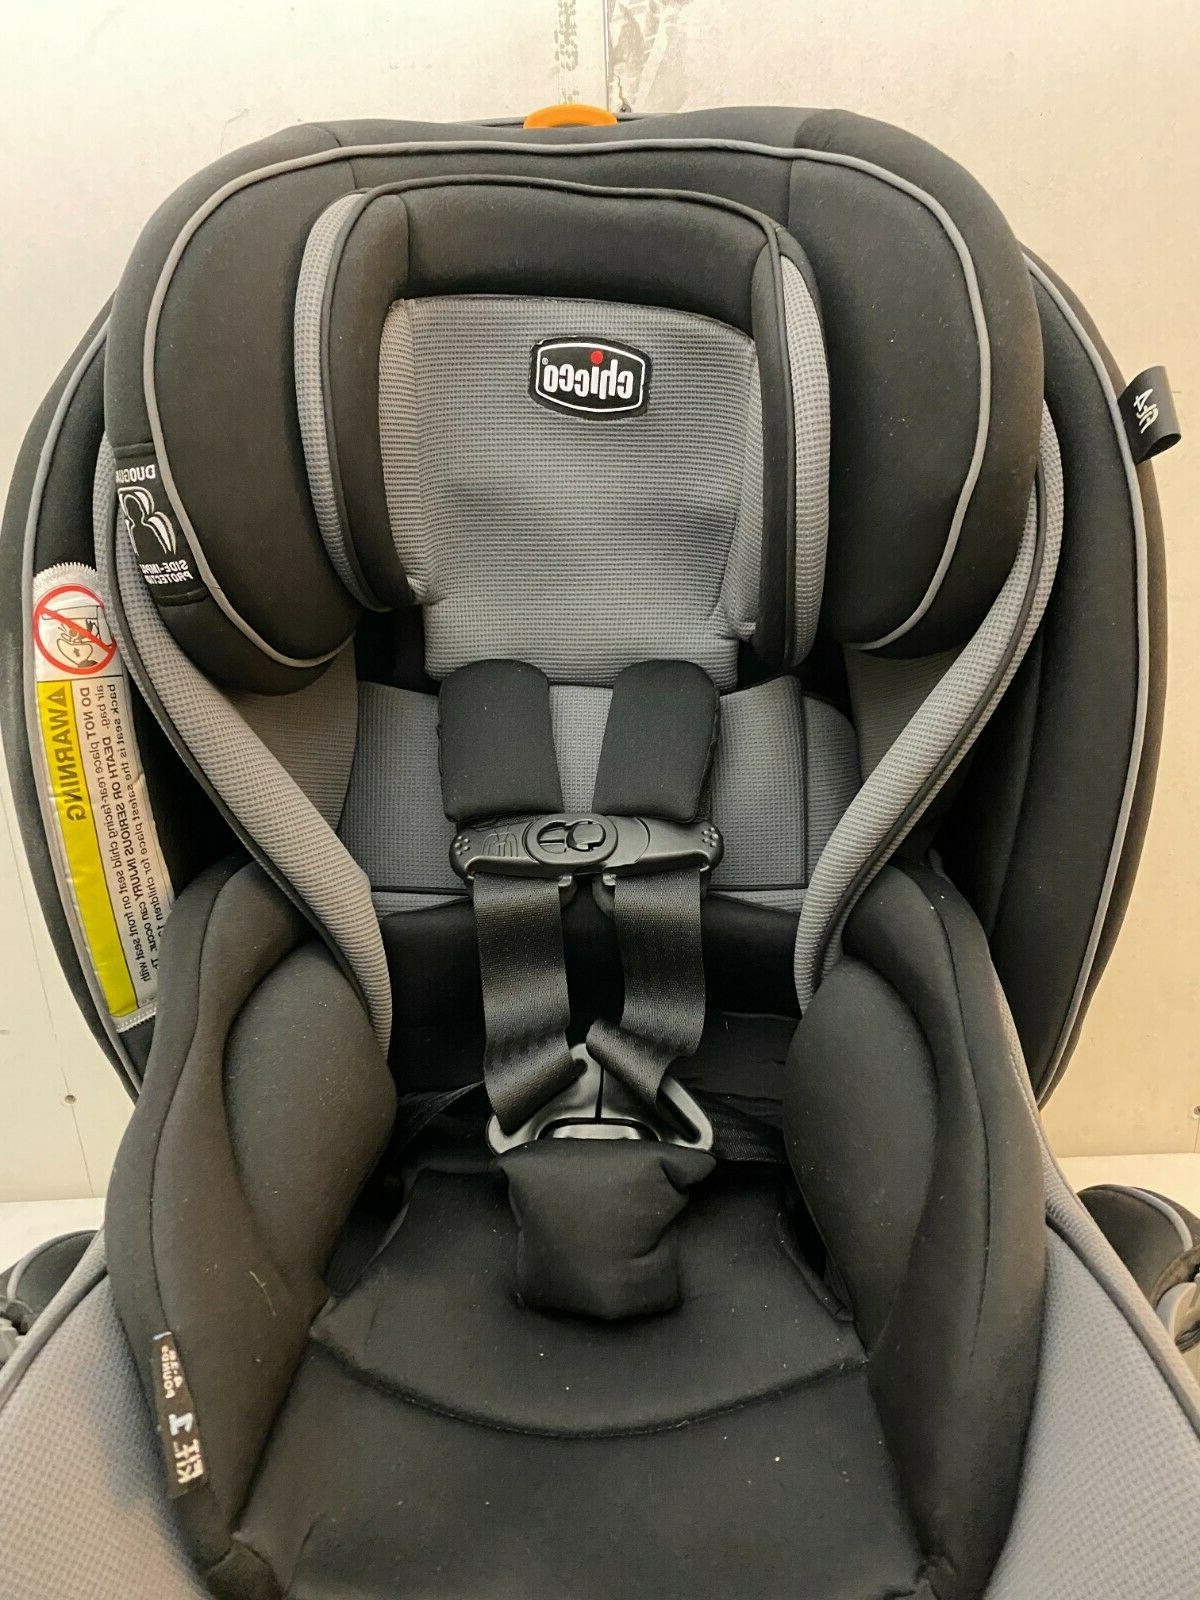 Chicco 4-in-1 Child Safety Baby Seat Onyx